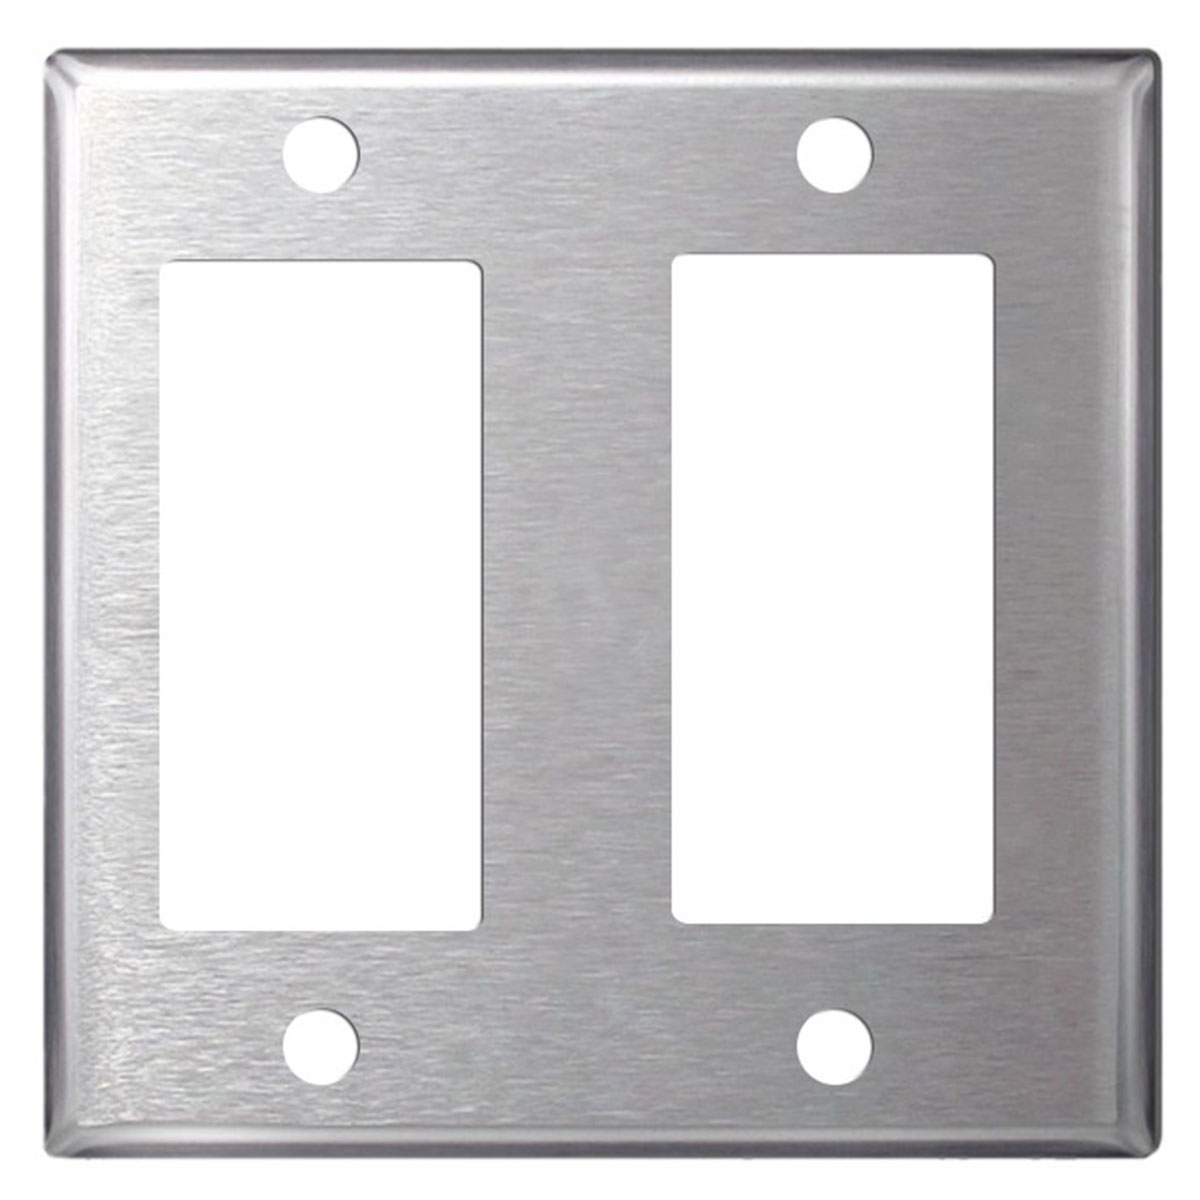 Blank Switch Plate Inspiration Stainless Steel Wall Plates  Single Double Gang  Blank Toggle 2018